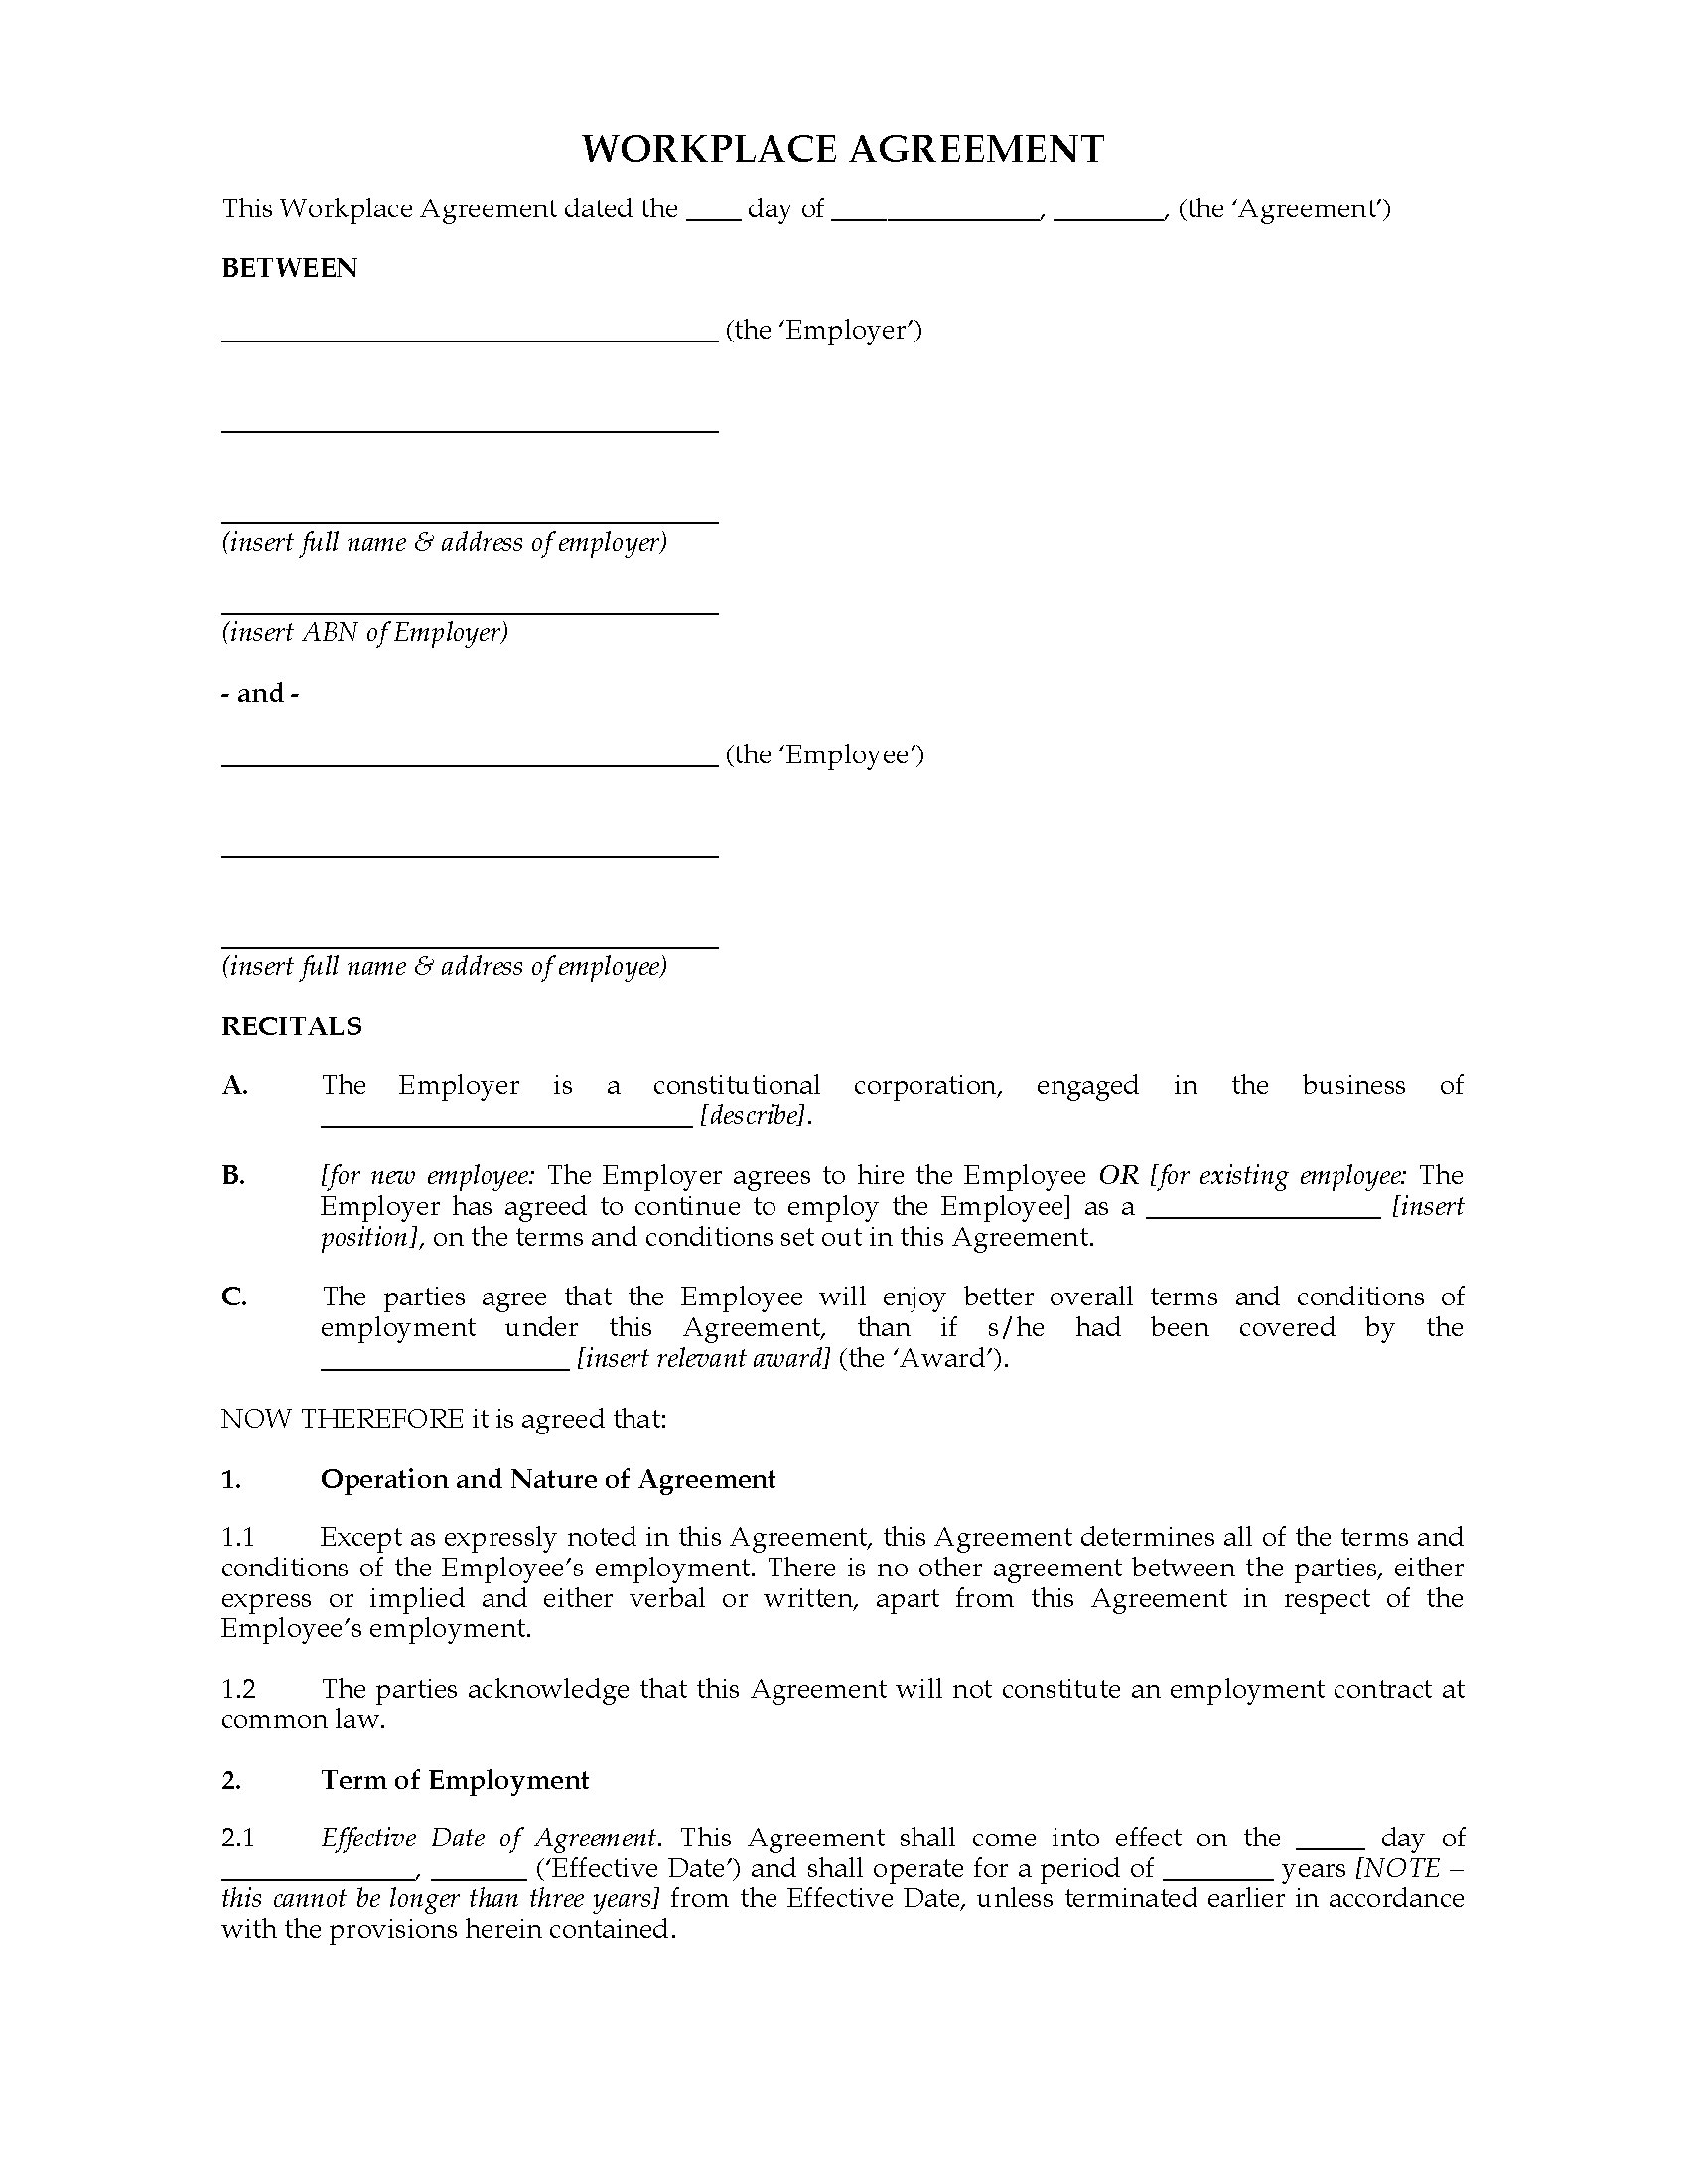 Australia workplace agreement template legal forms and for 0 hours contract template